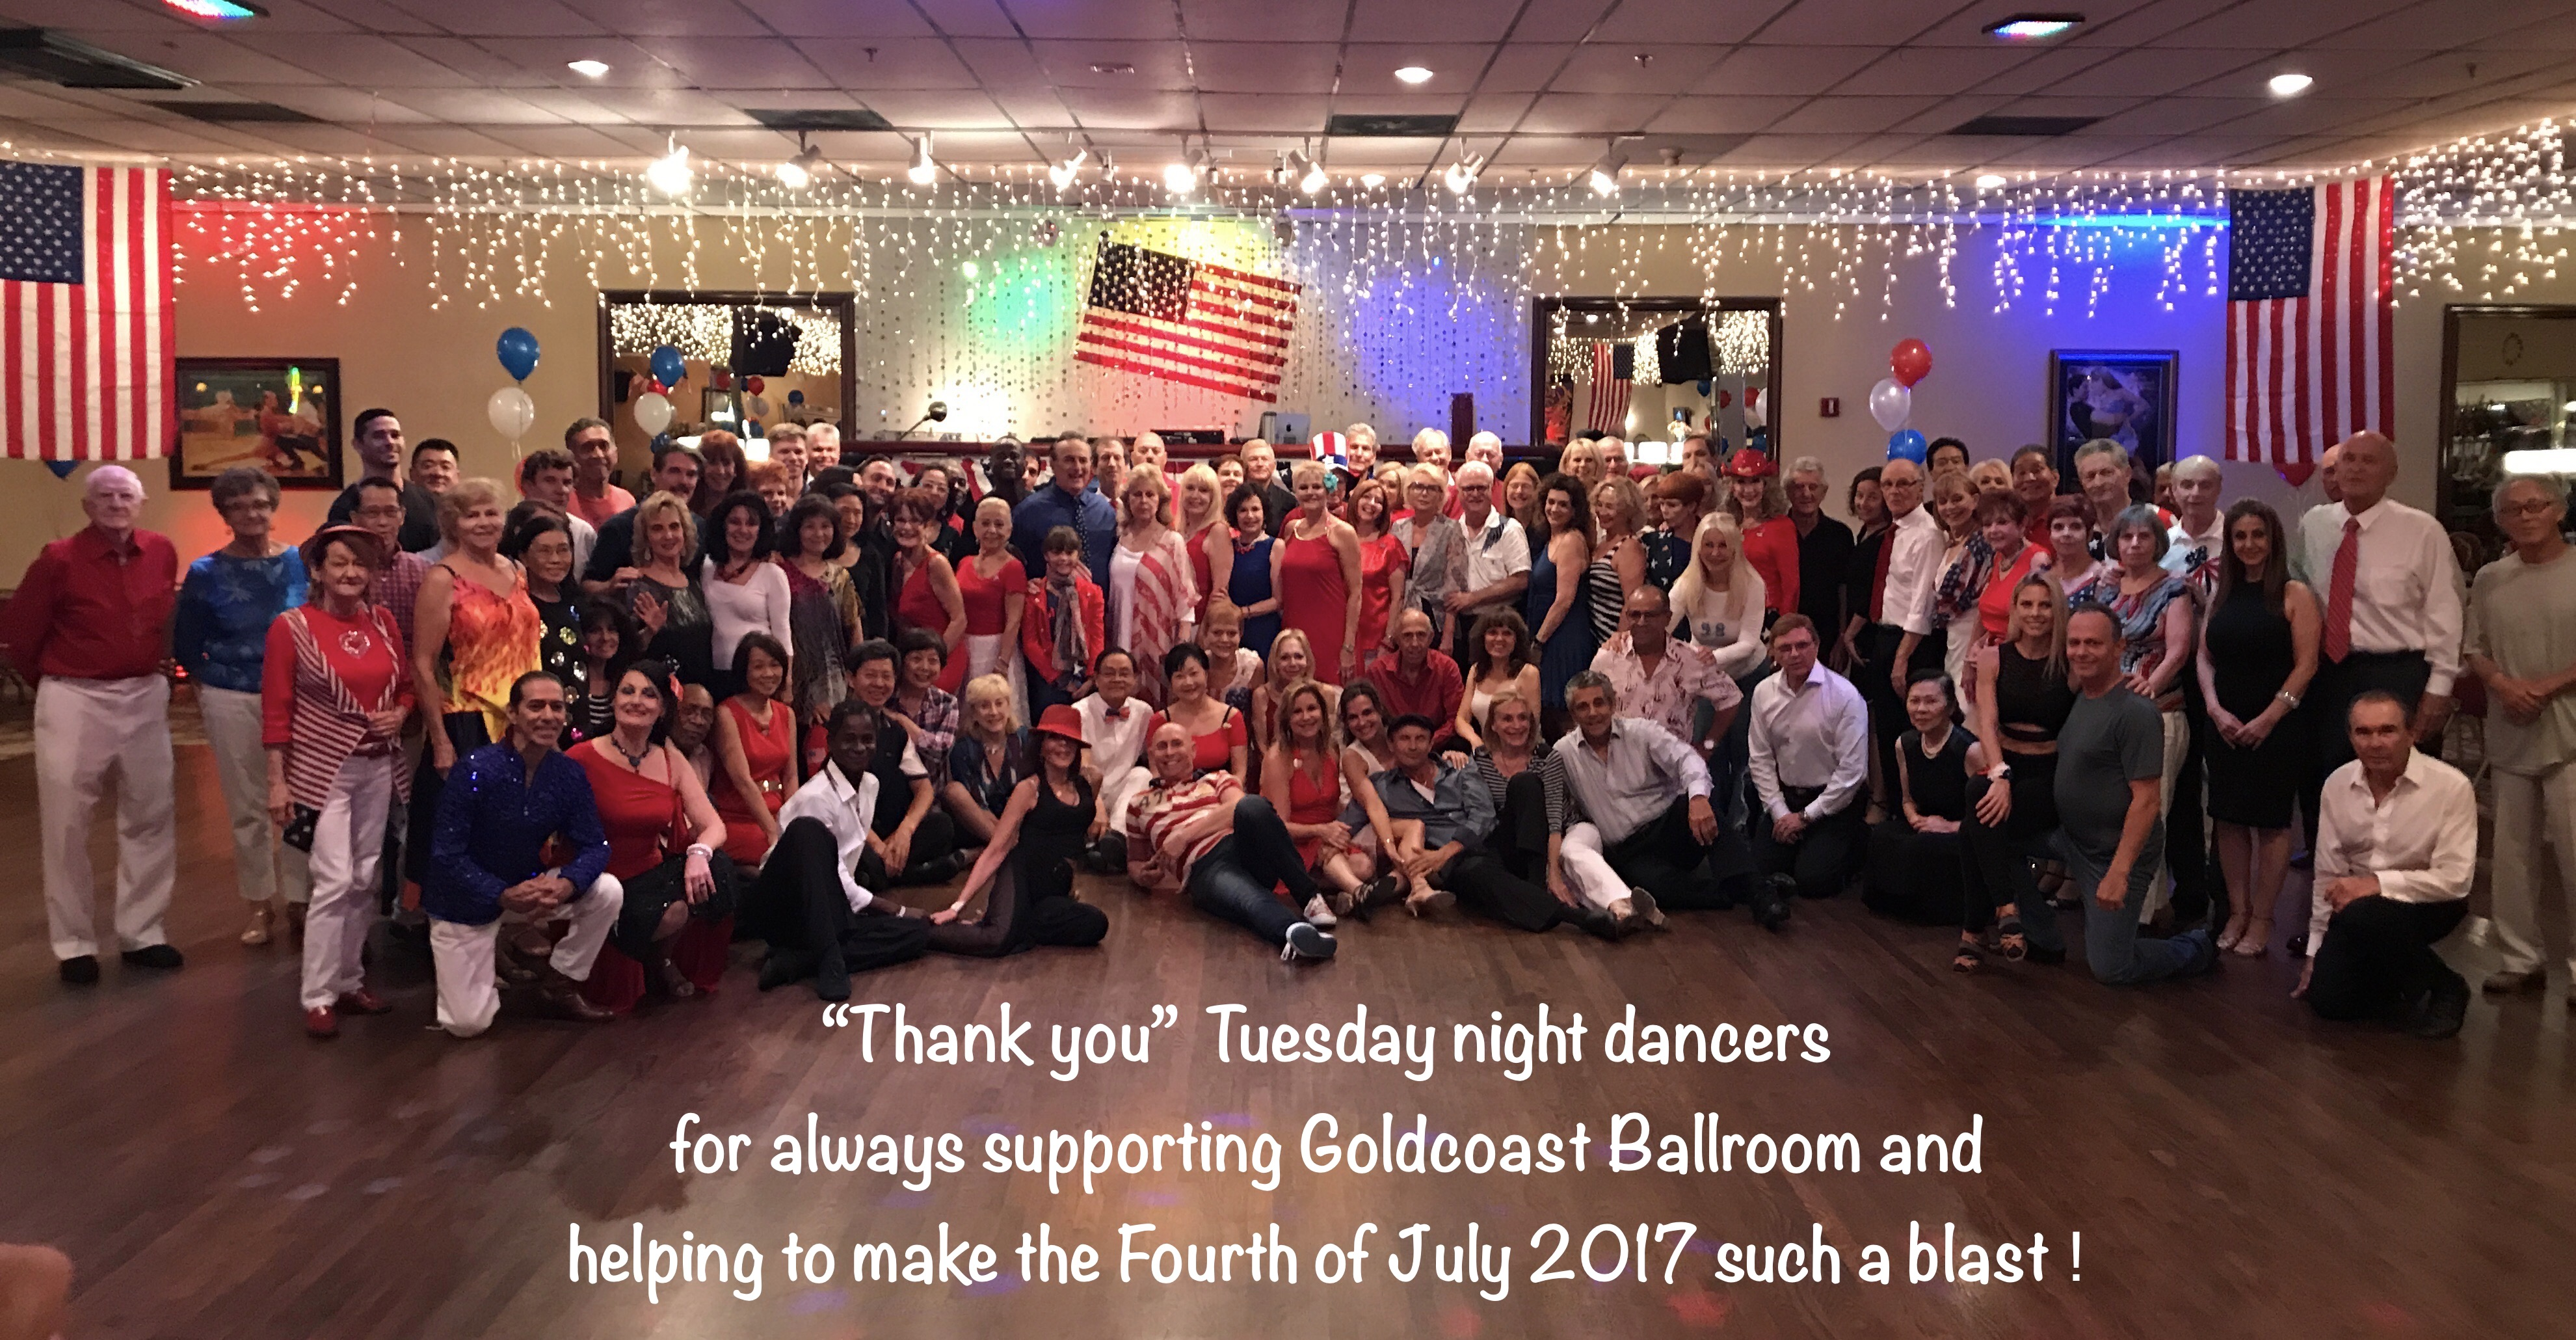 One of our Spectacular Tuesday Nights at Goldcoast Ballroom! - July 4, 2017